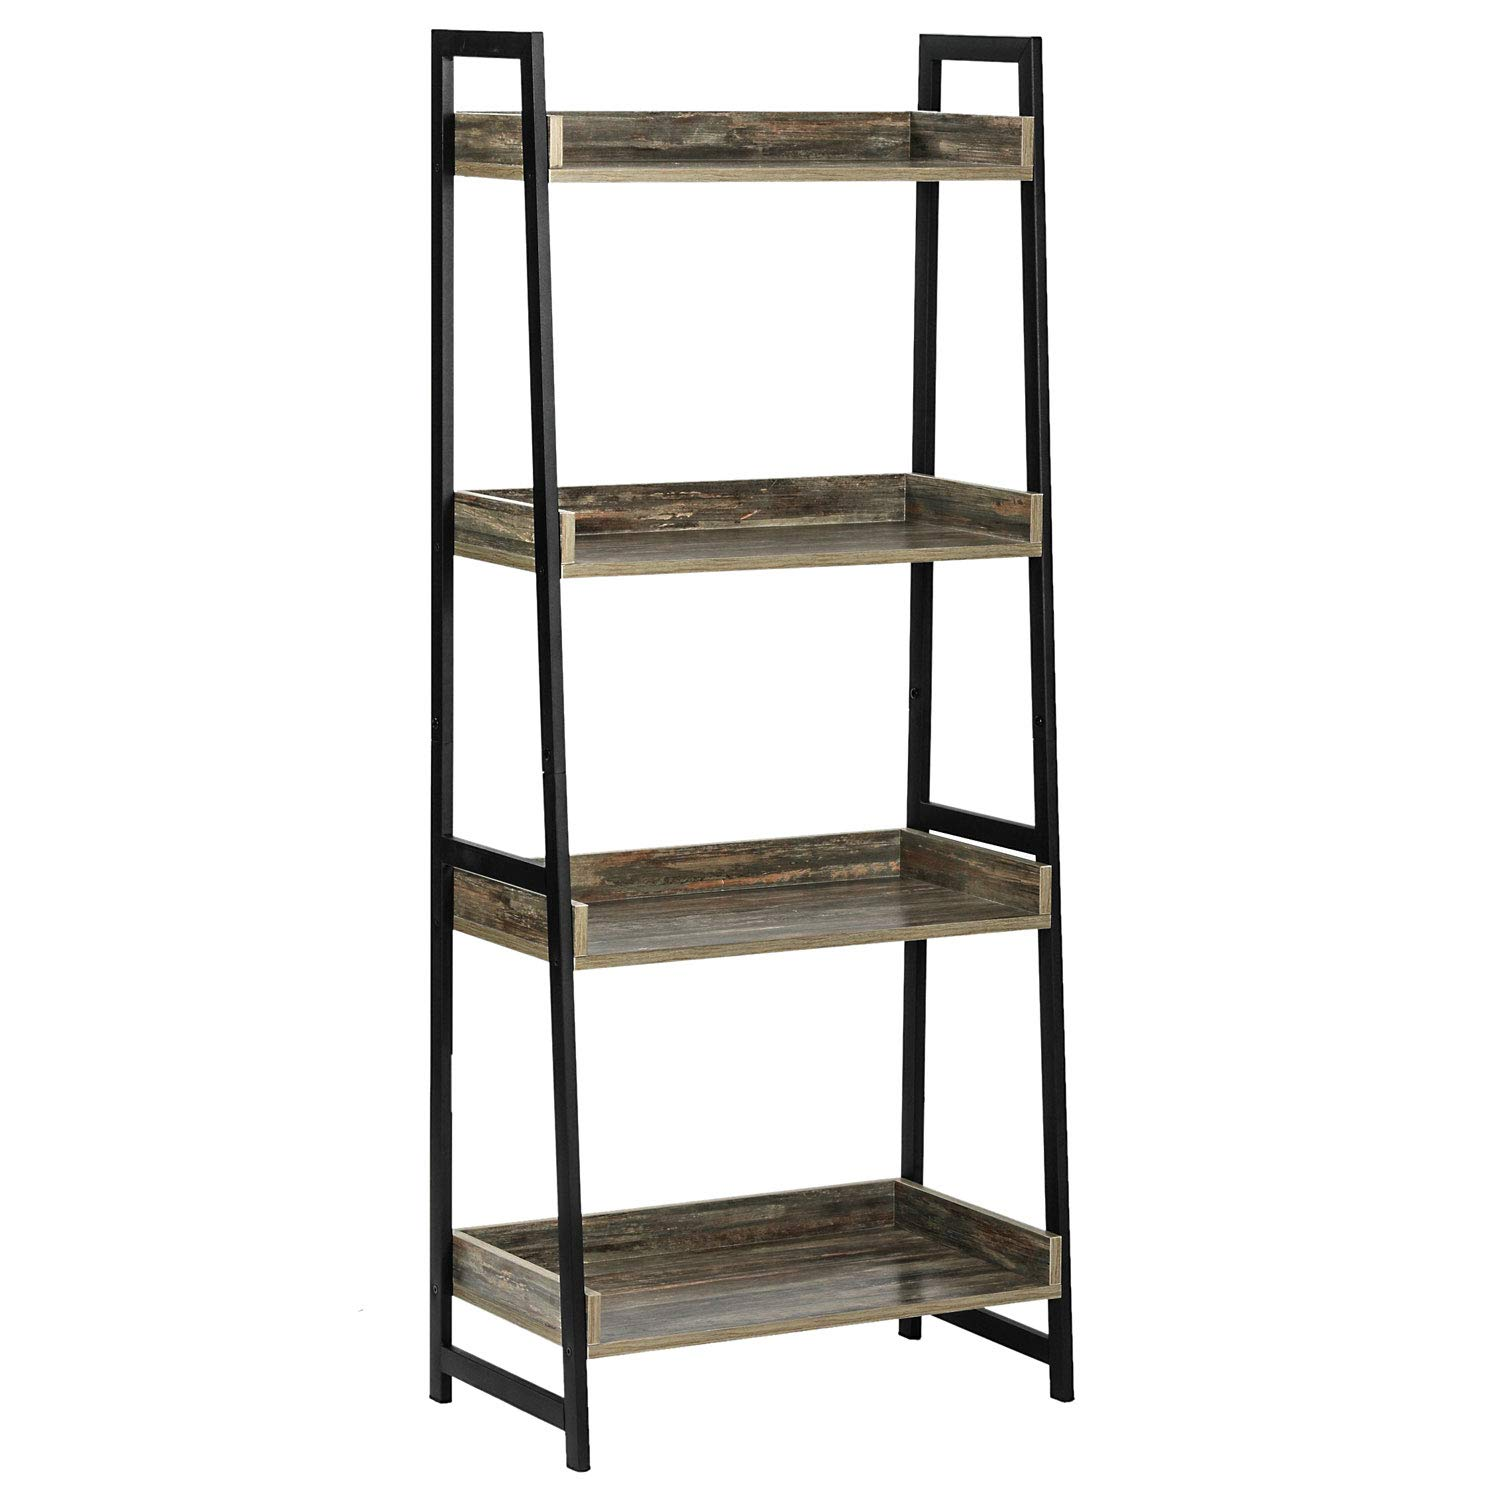 IRONCK Industrial Bookshelf, Ladder Shelf 4-Tier with Baffle, Storage Shelves, Wood Look Bookcase for Bathroom, Living Room, Sturdy, Retro Colorful Light by IRONCK